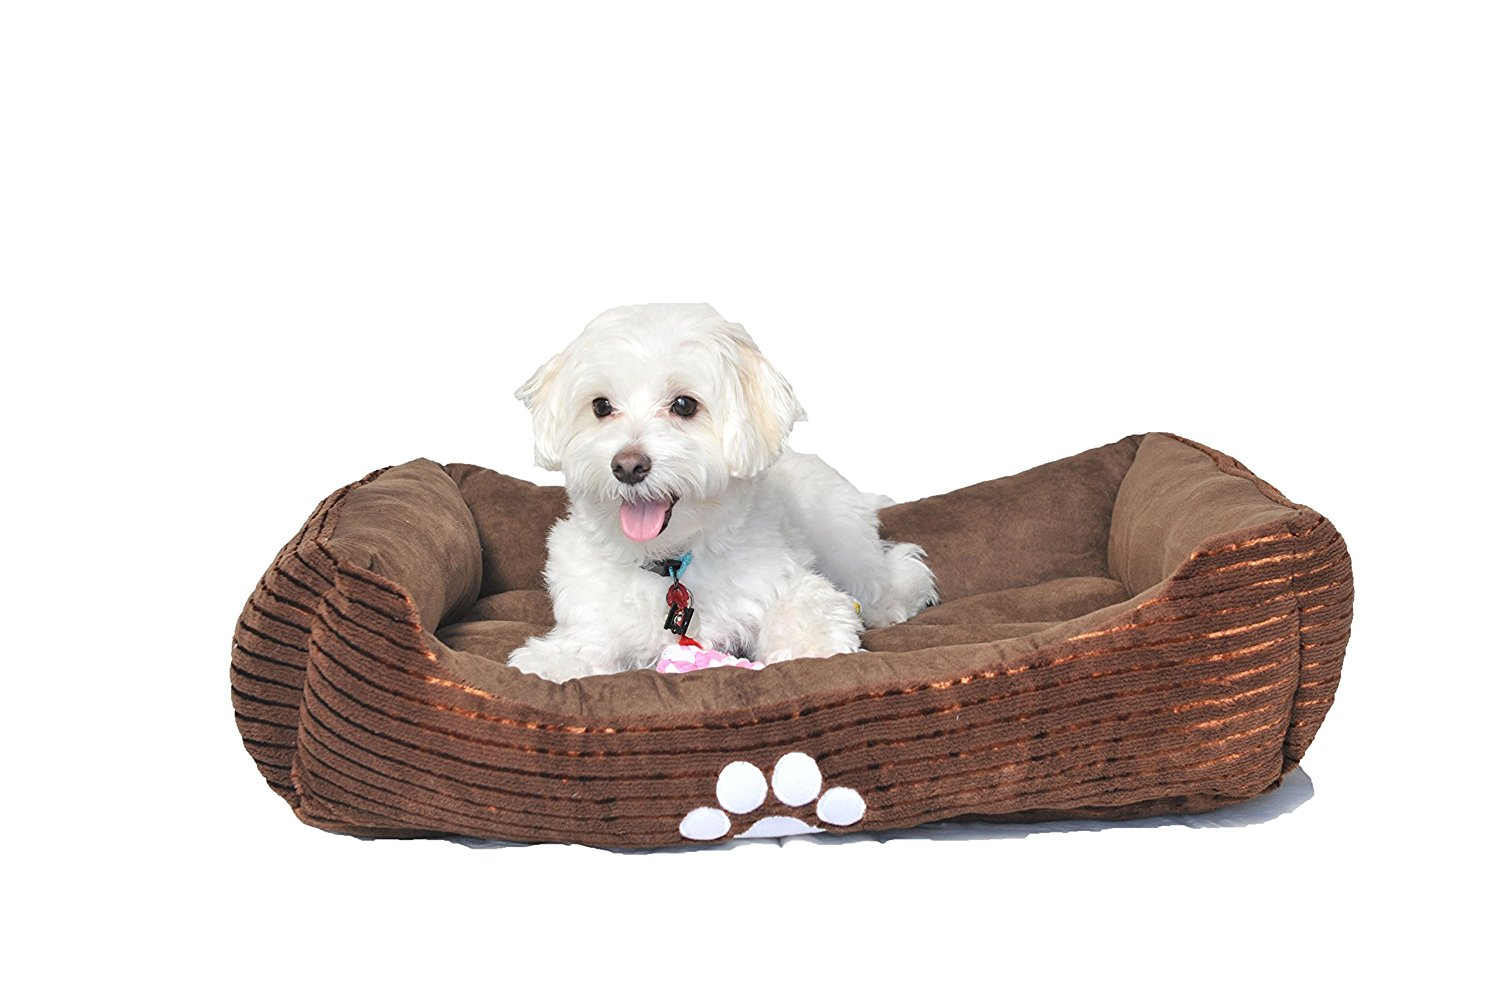 3.-HappyCare-Textiles-Reversible-Rectangle-Pet-Bed-with-Dog-Paw-Printing-Medium-size 10 Best Dog Beds for Small Dogs